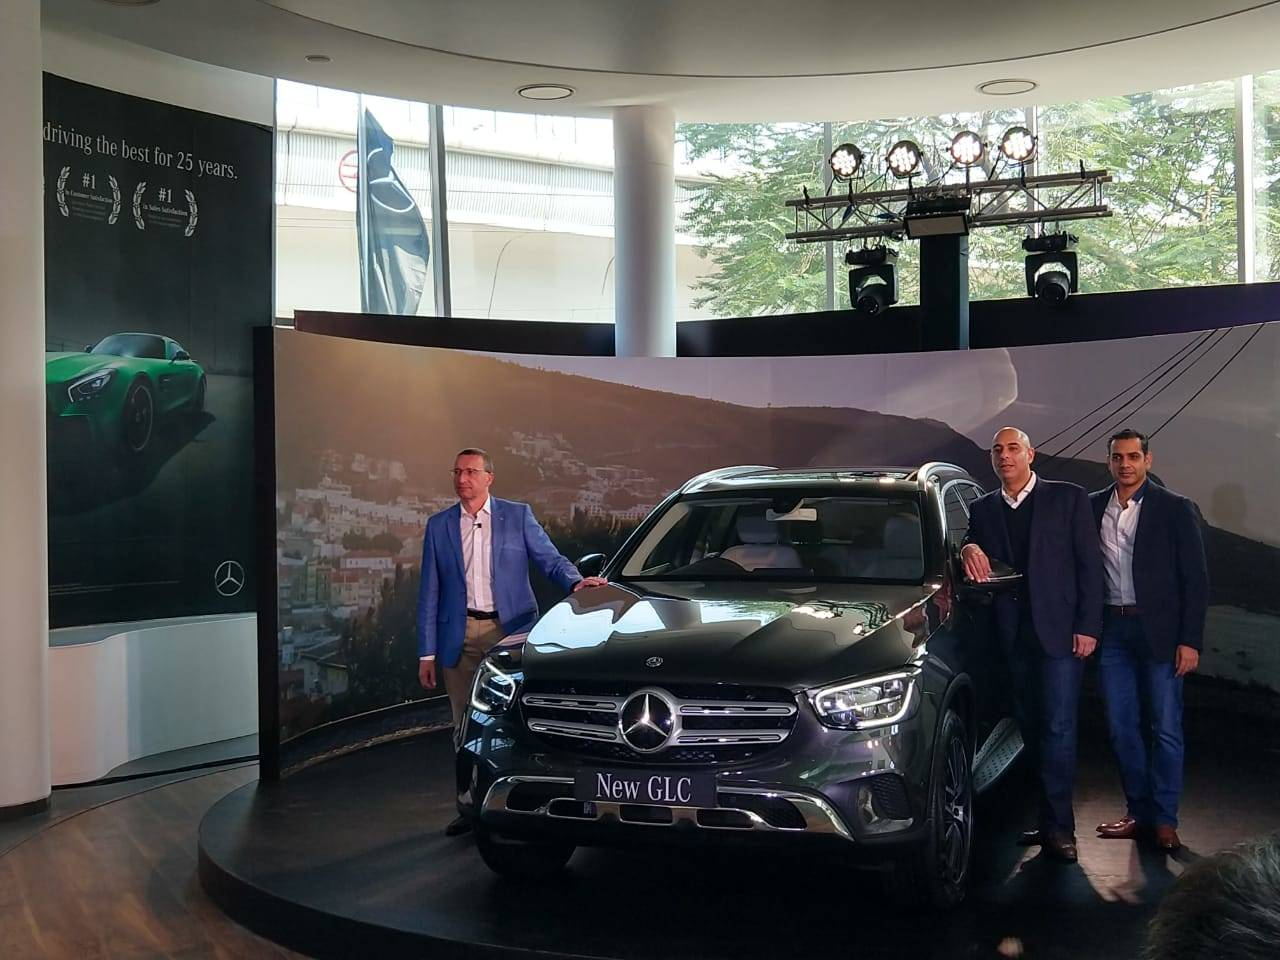 Mercedes Benz Glc Mercedes Benz Launches 2020 Glc Suv In India Price Starts From Rs 52 75 Lakh Auto News Et Auto